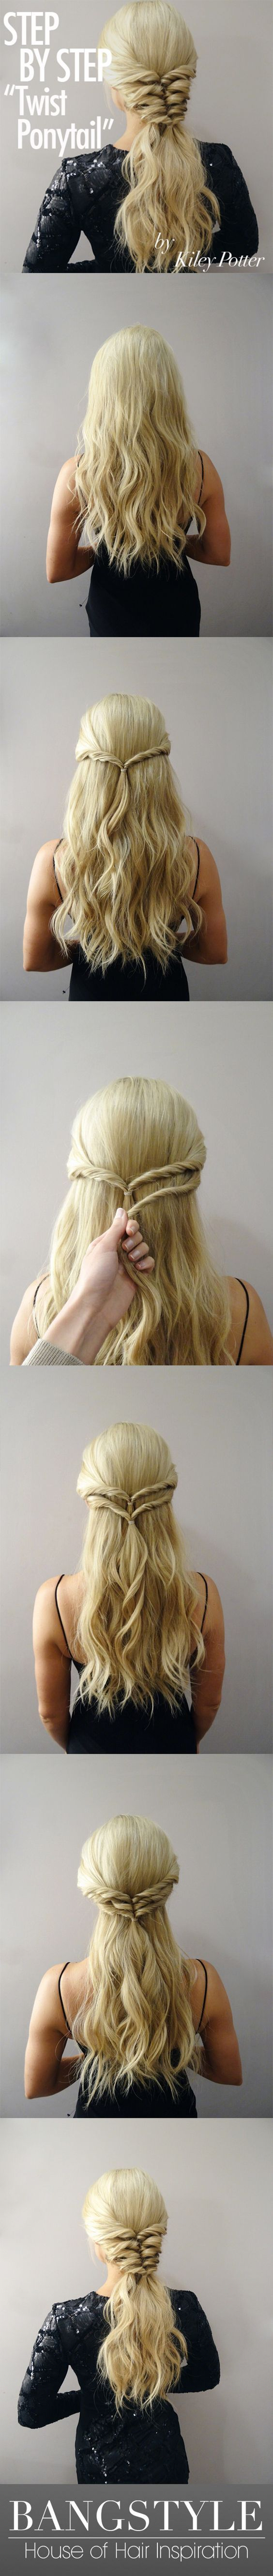 20 Gorgeous Braided Hairstyles For Long Hair – Trend To Wear